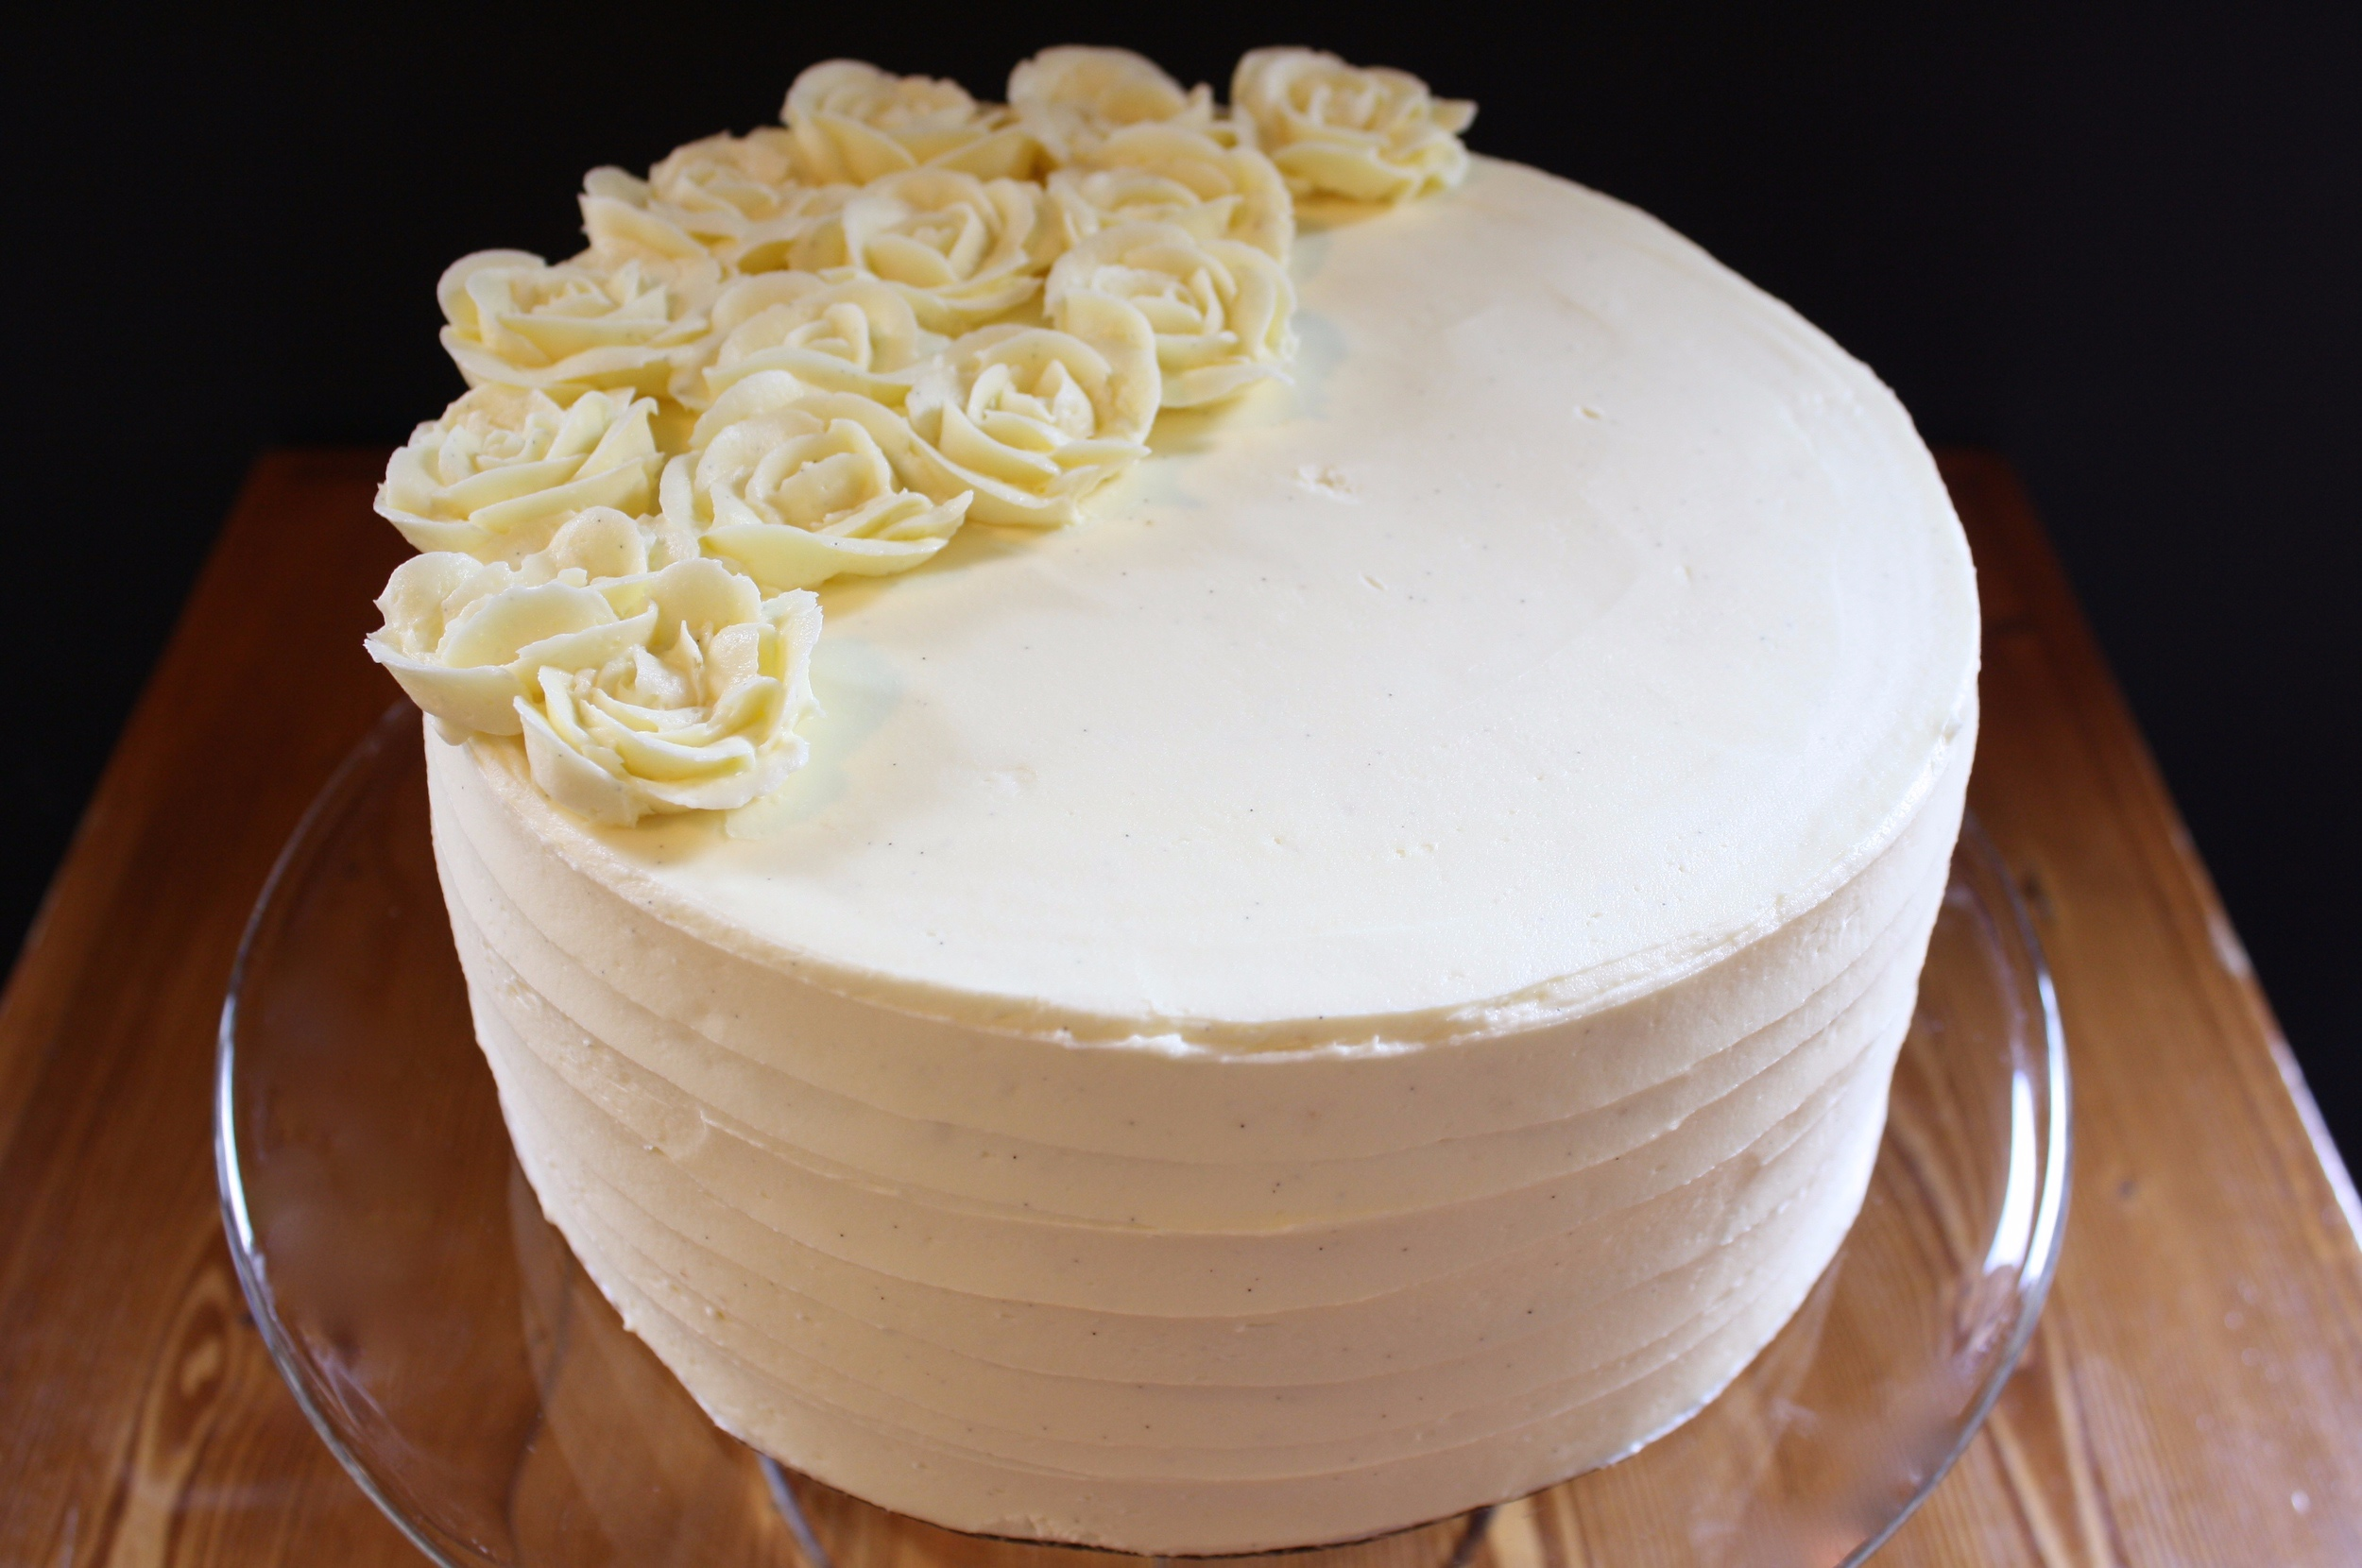 Tres leches*  DECADENT VANILLA CAKE SOAKED IN SWEETENED CONDENSED MILK AND EVAPORATED MILK, AND LAYERED WITH VANILLA BUTTERCREAM ICING